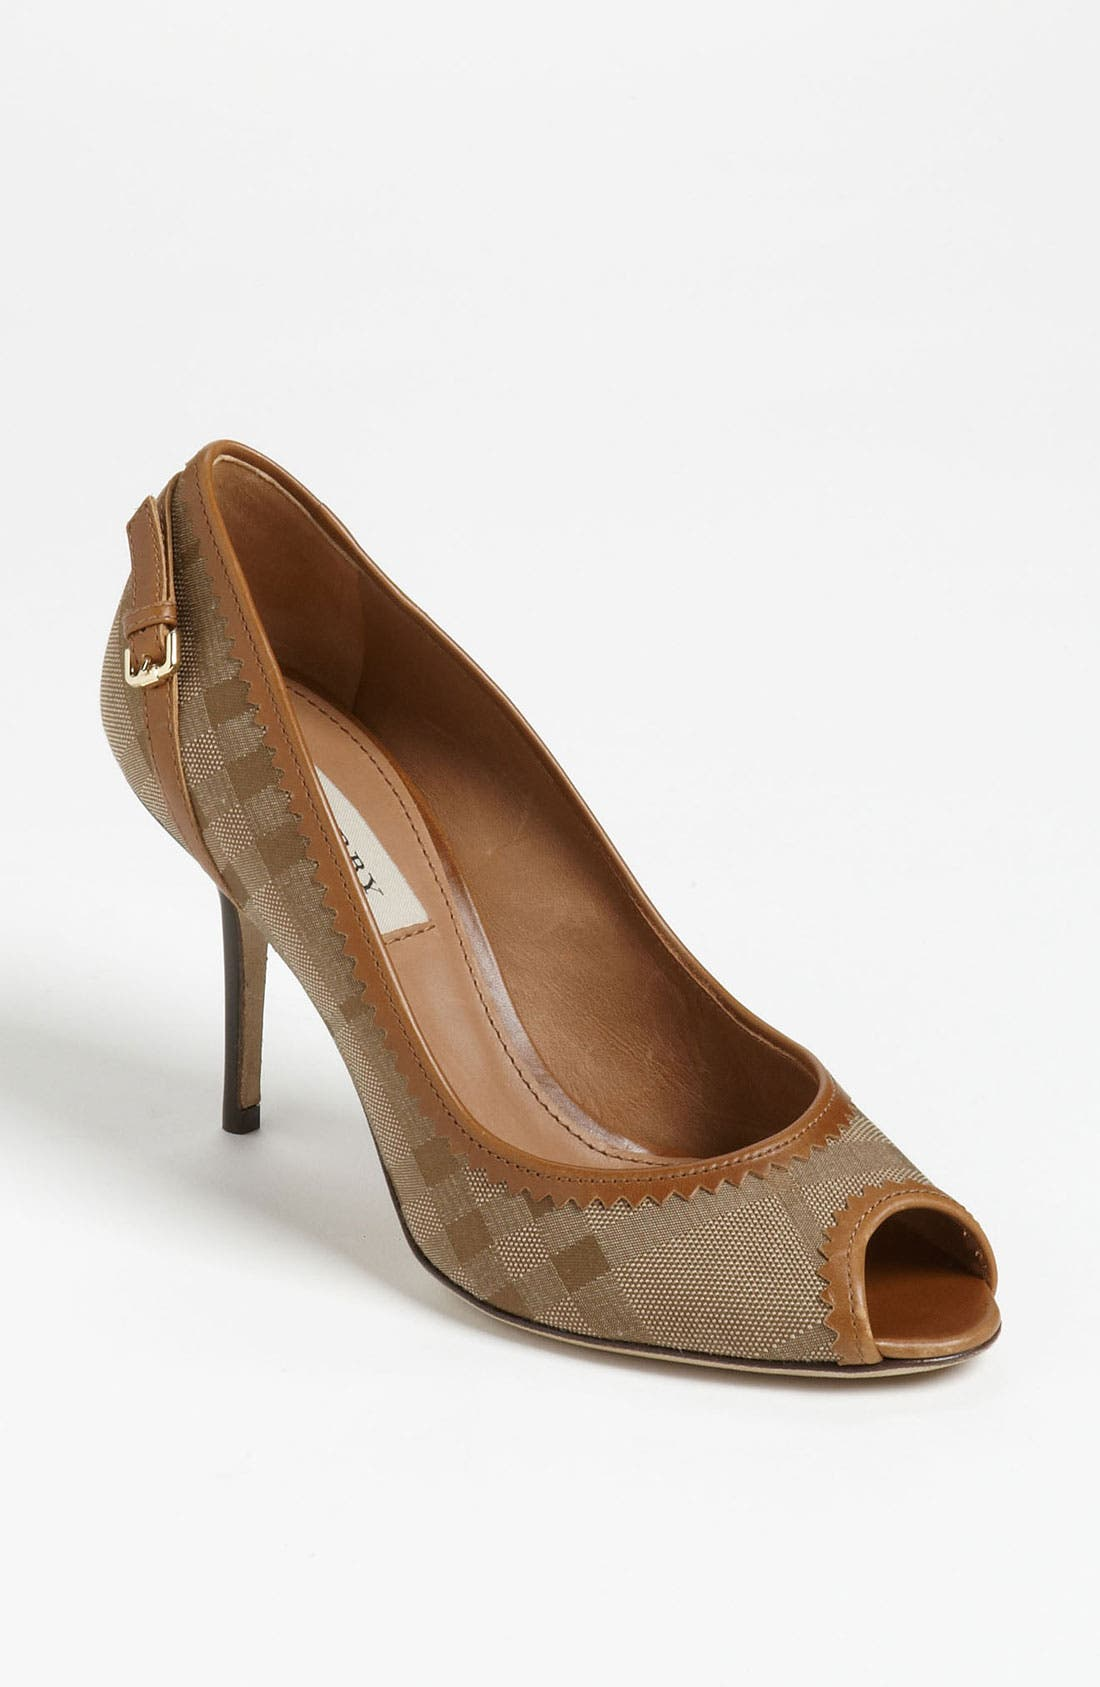 Main Image - Burberry 'Allalline' Pump